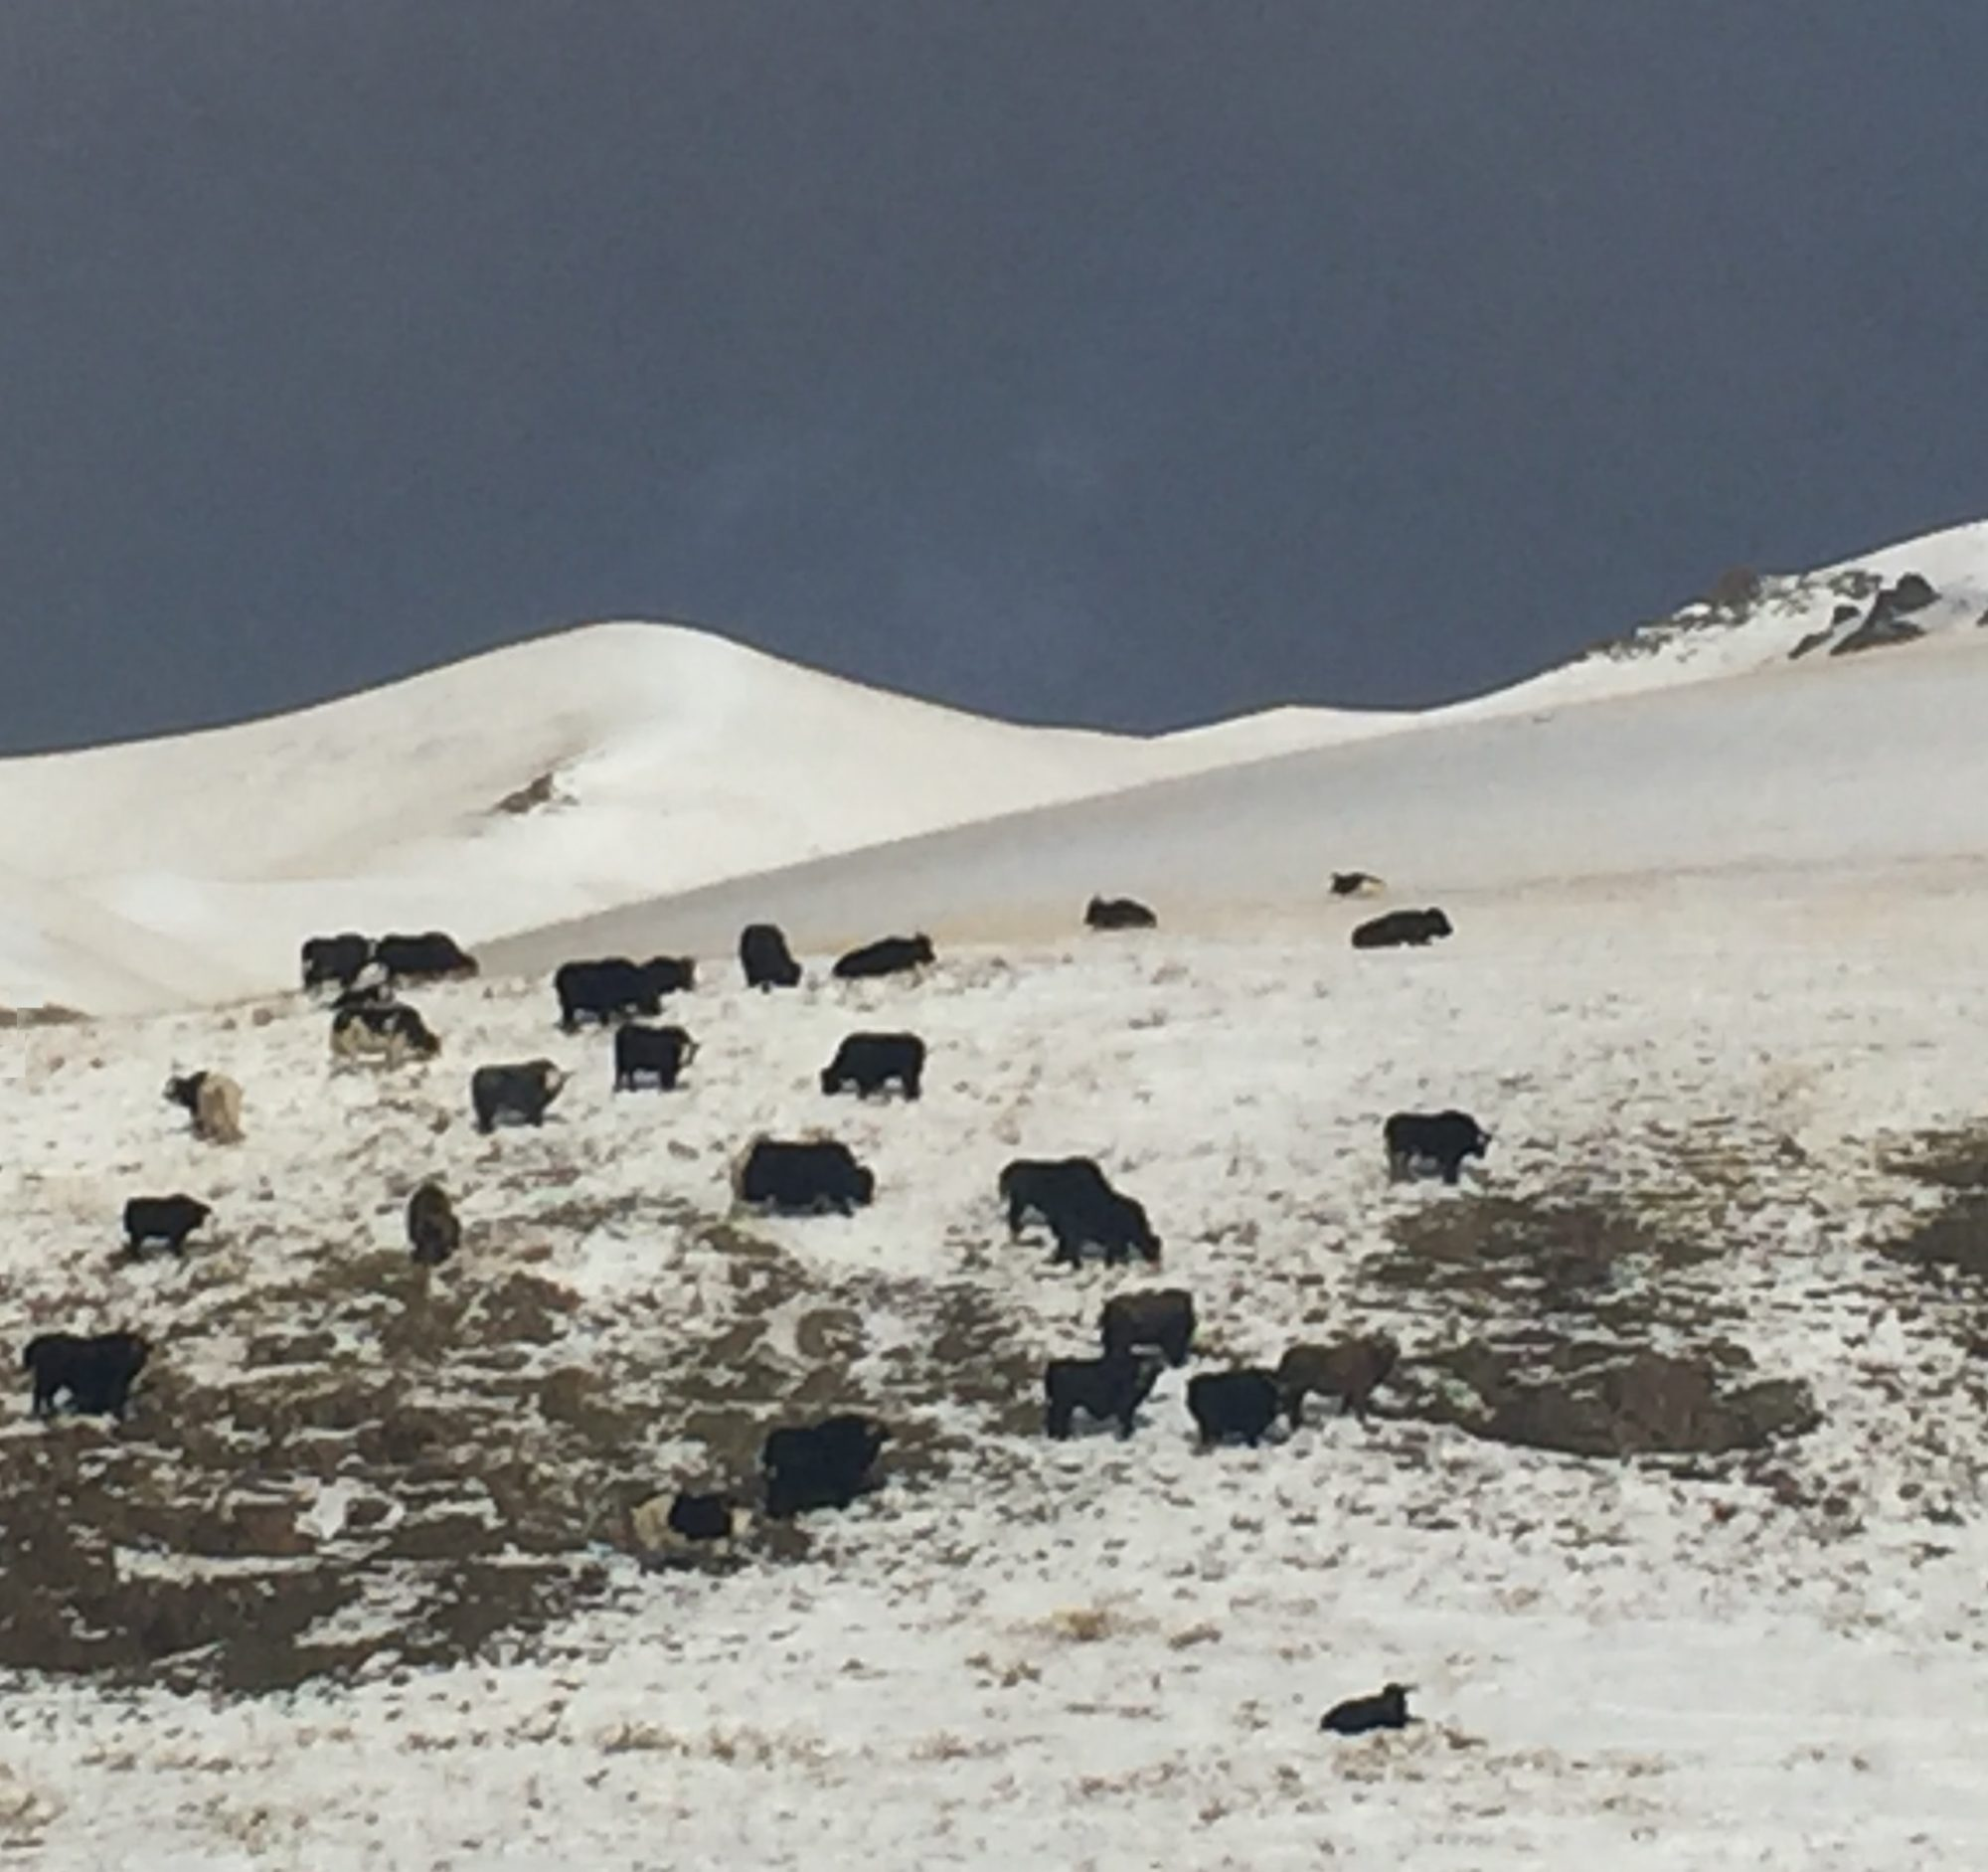 Yaks in the upper Naryn River valley, October 2016 (source: B. Orlove)